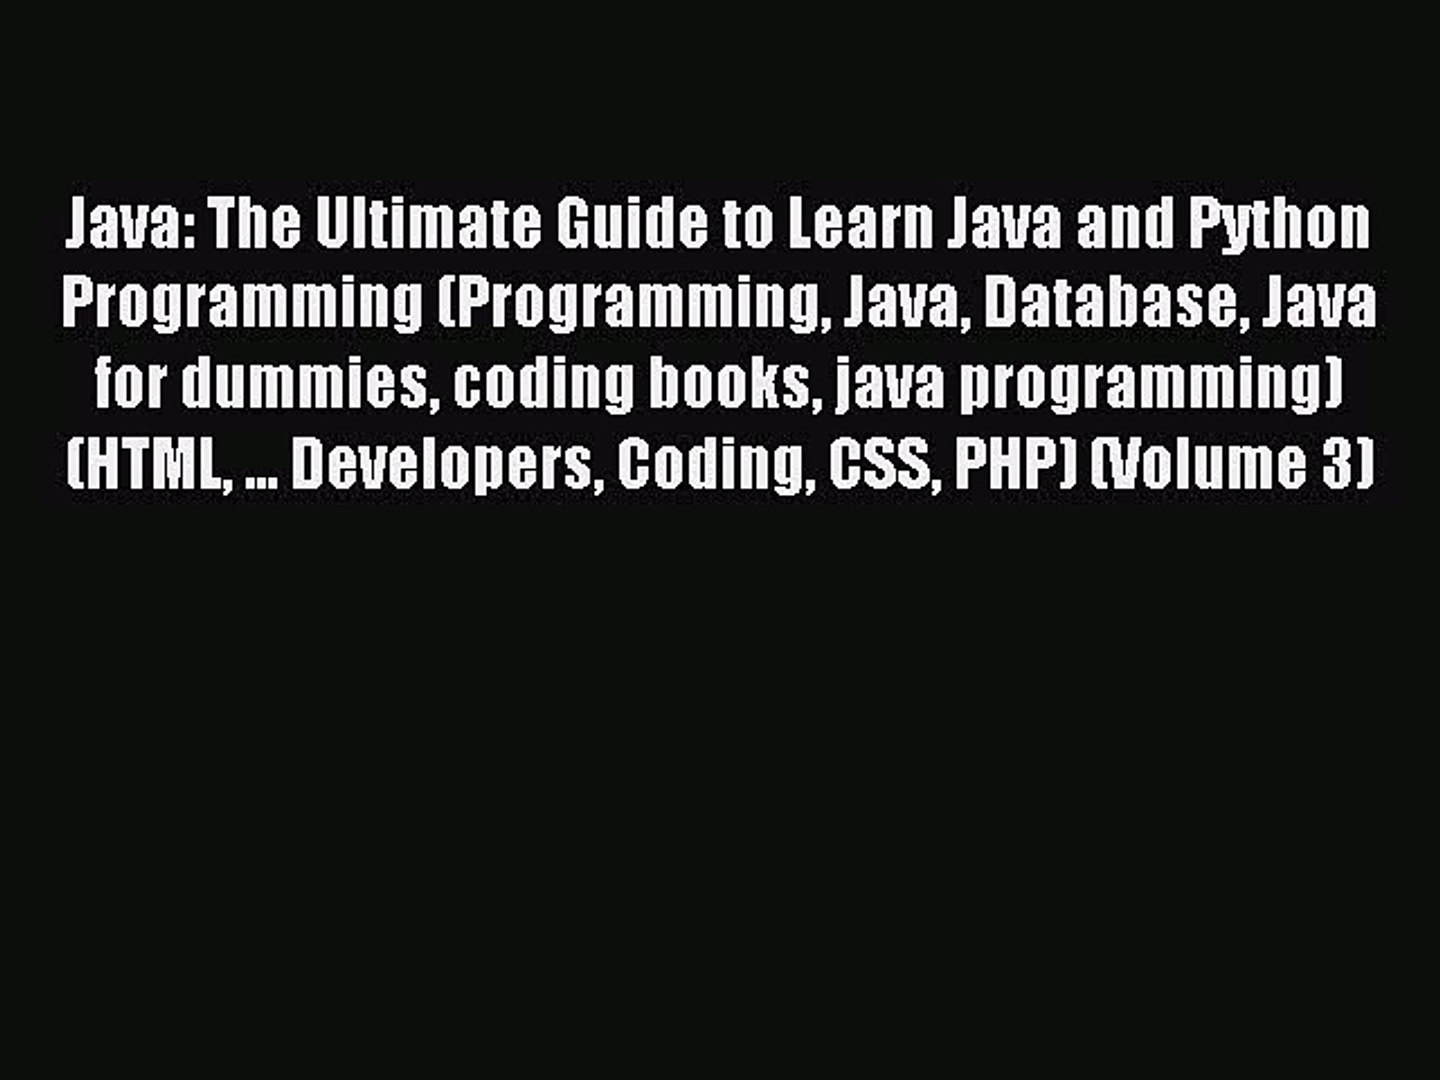 Read Java: The Ultimate Guide to Learn Java and Python Programming (Programming Java Database